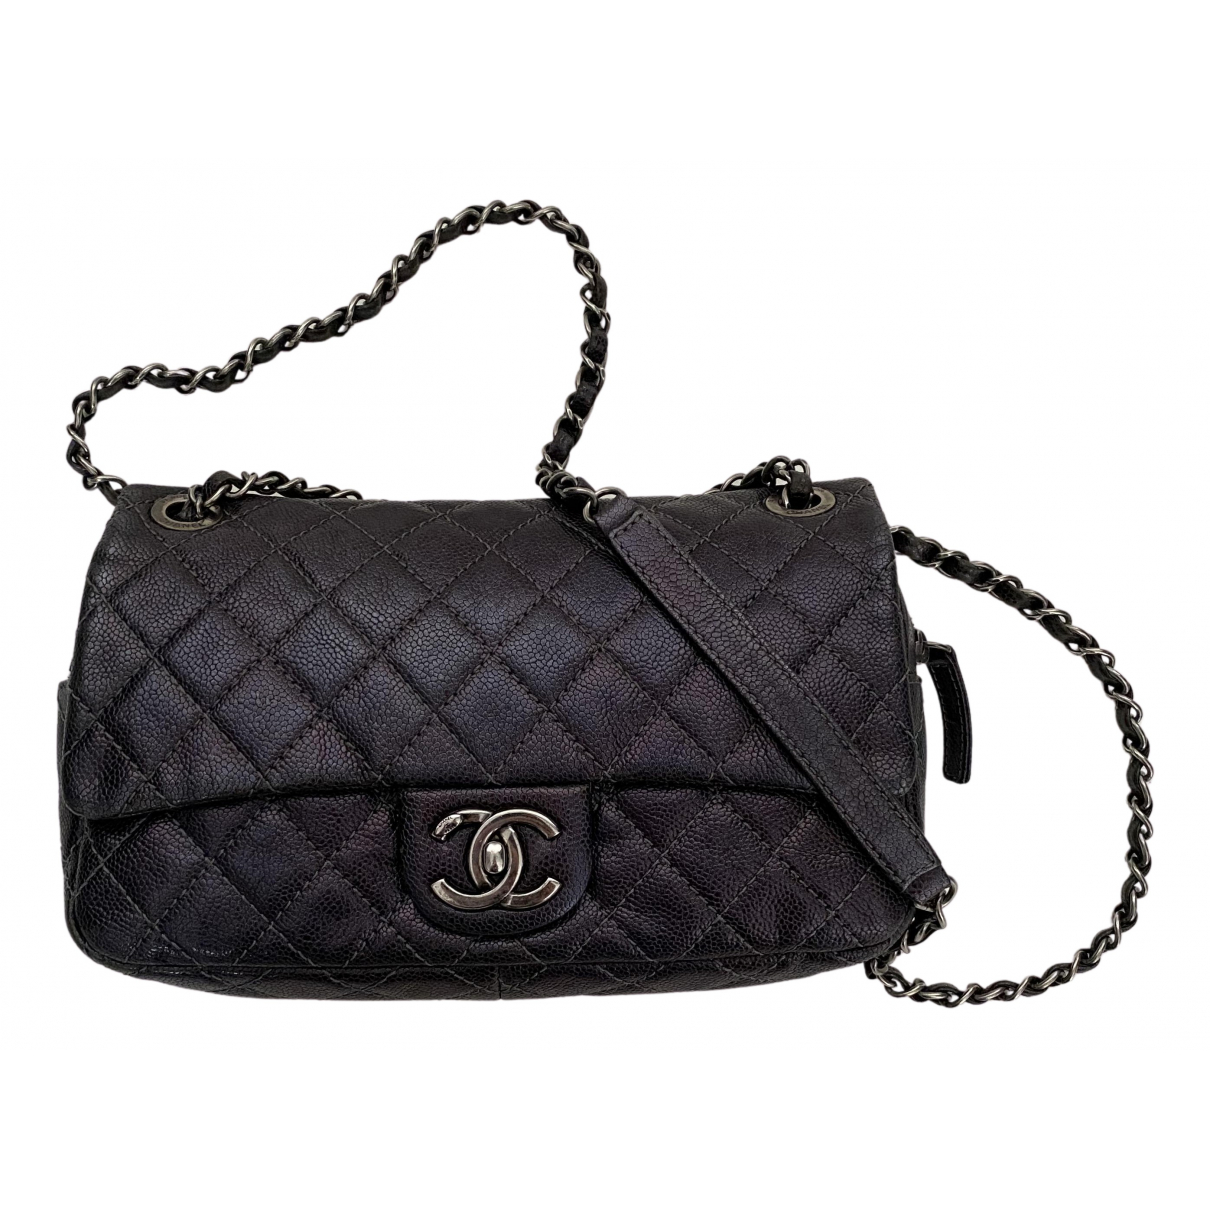 Chanel Trendy CC Metallic Leather handbag for Women N